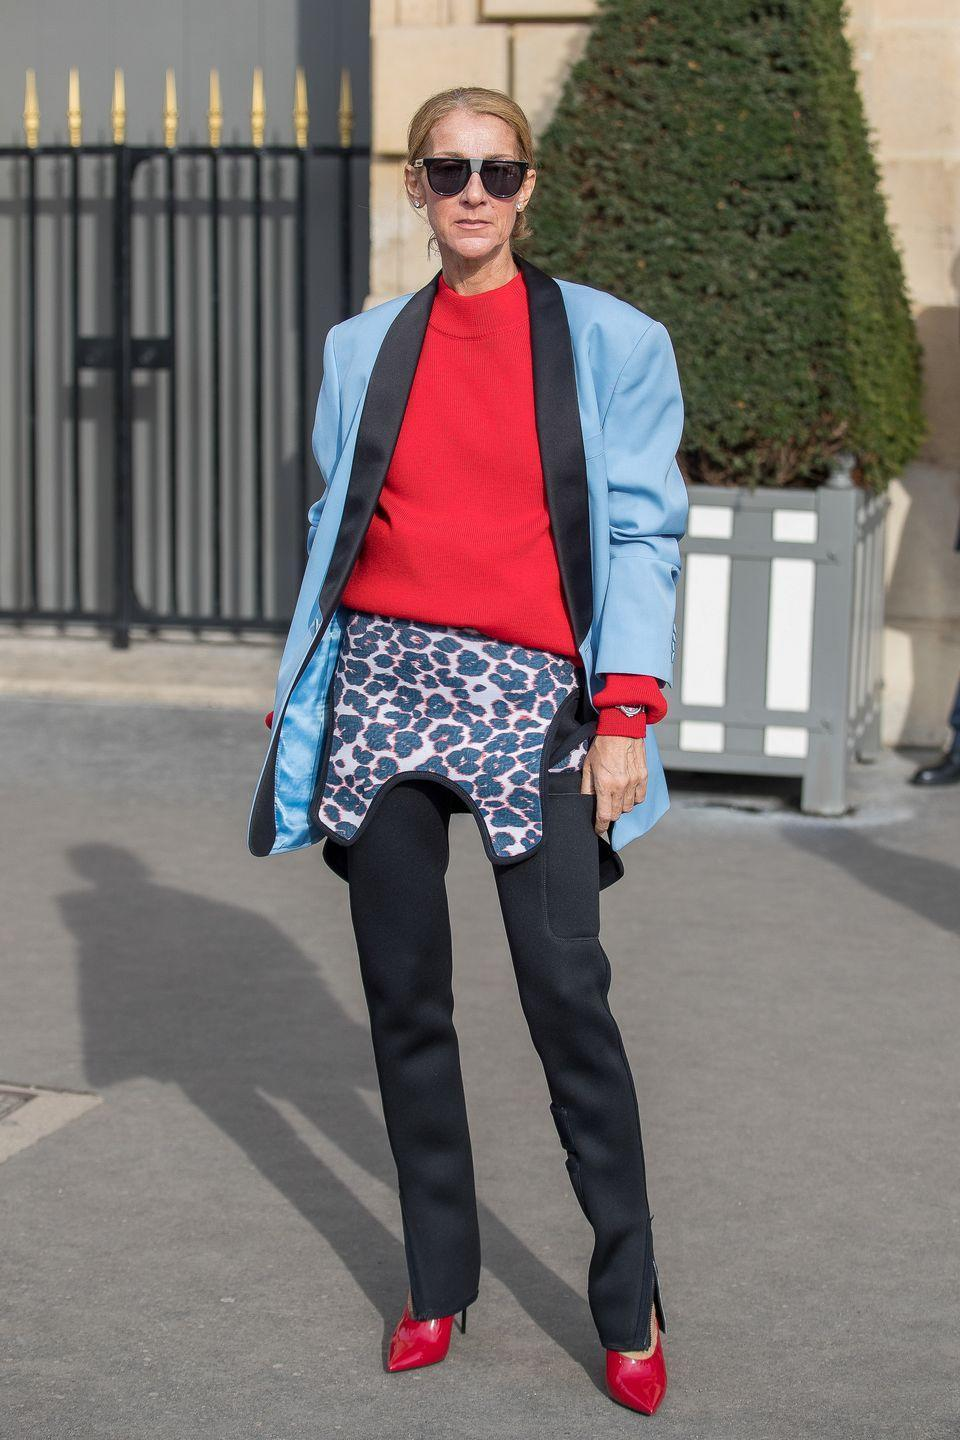 <p>Proving herself to be the Queen of layering, Dion paired a bright red sweater with a boxy blazer and reversible neoprene overalls. She finished off the look with classic red pumps and sunnies. </p>